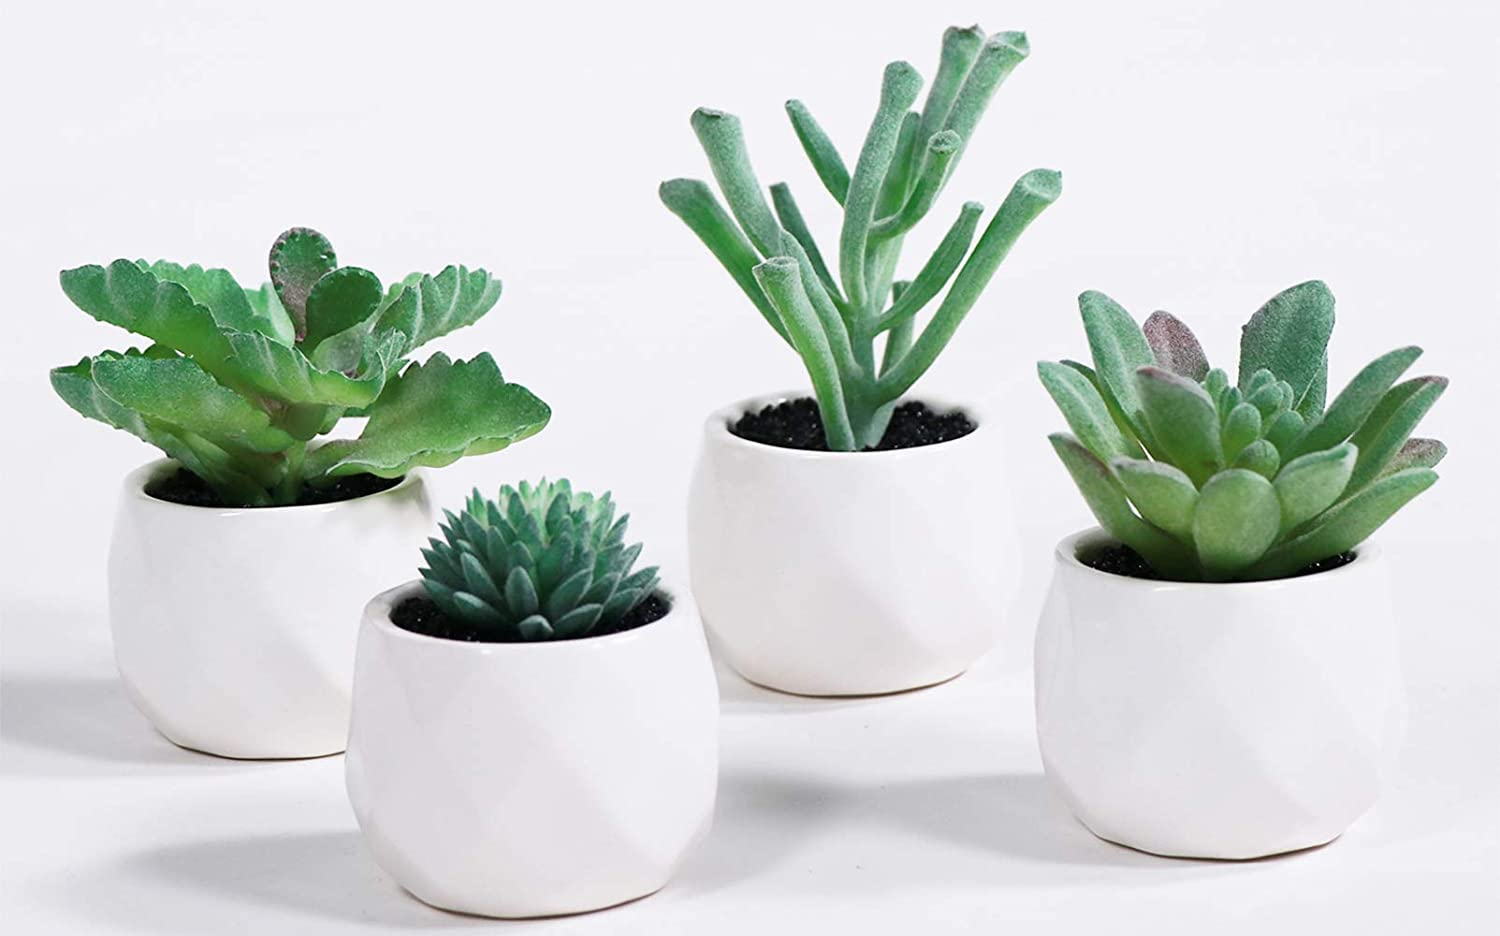 LITA Artificial Succulent Plants Fake Succulents Small Plants in White Ceramic Potted for Indoor Decor Office Room Desk Decoration4 Pots (Green -2)